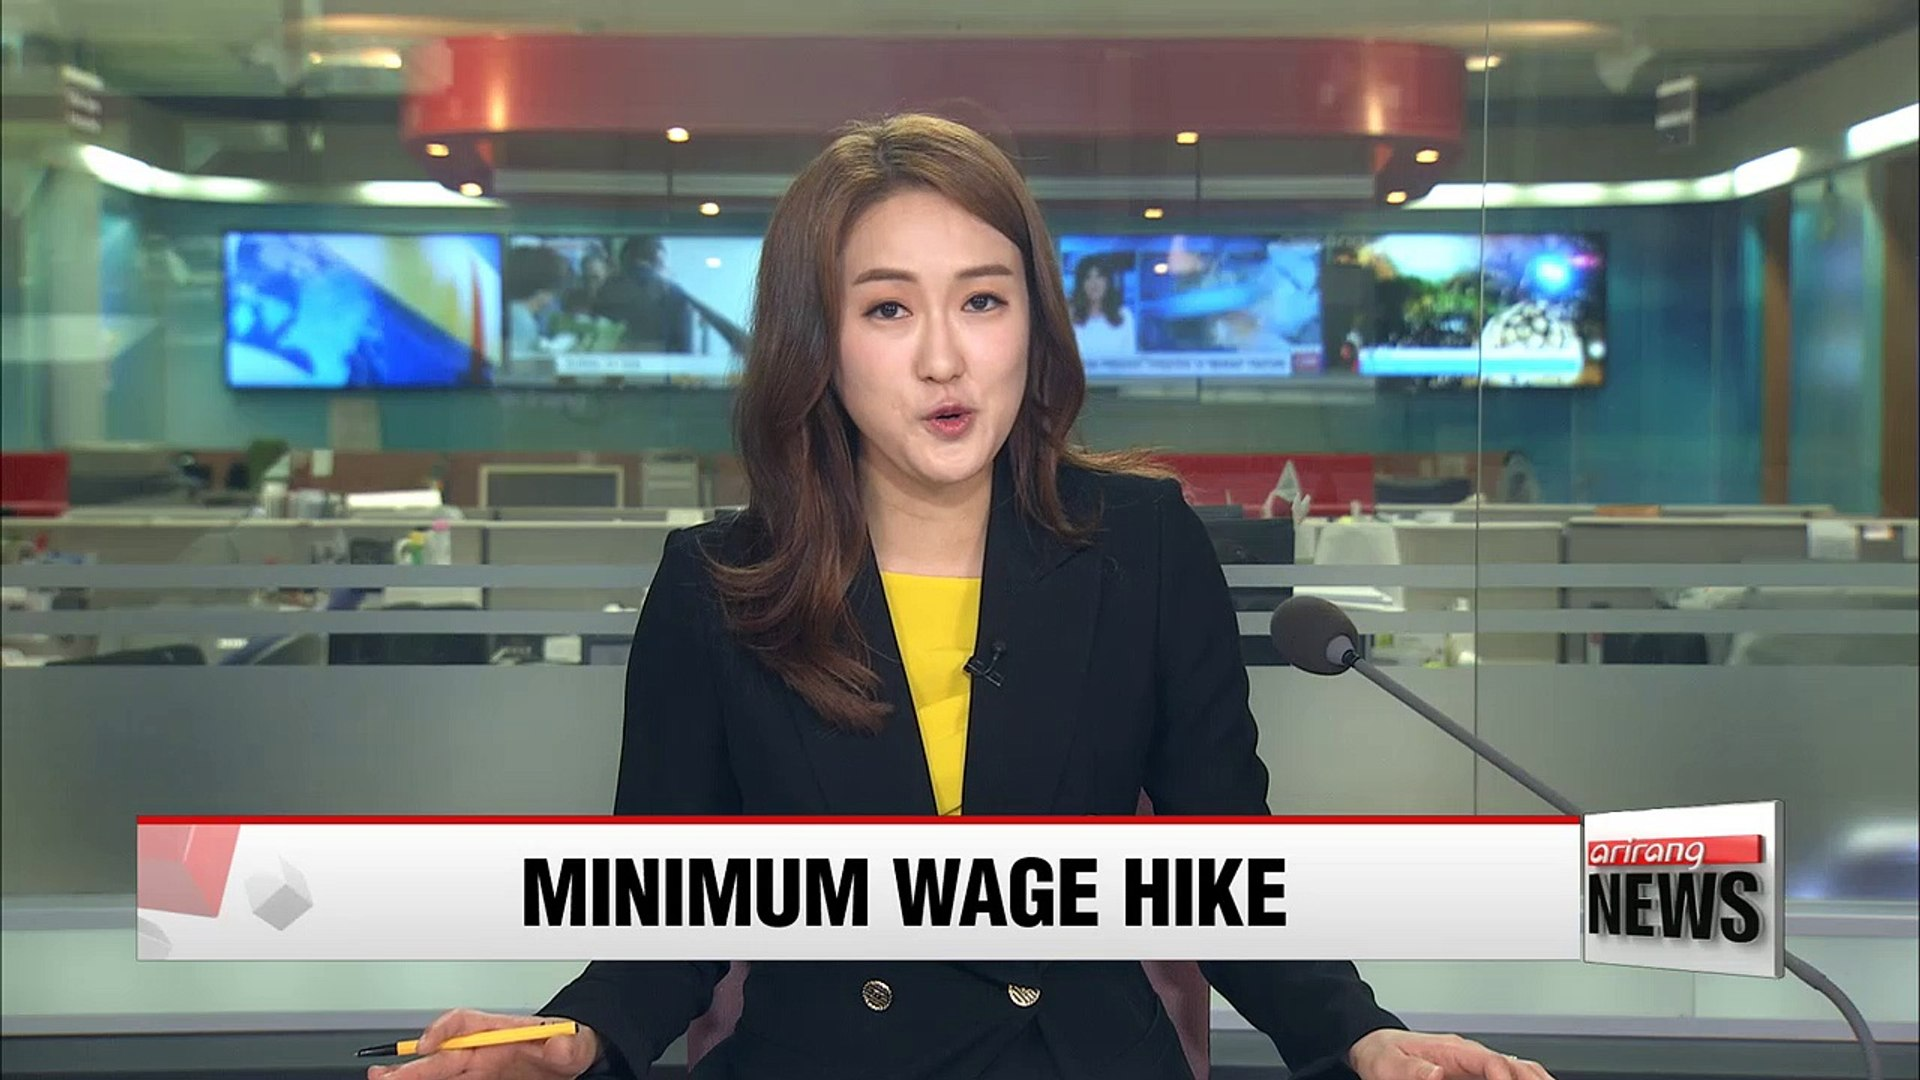 Korea hikes 2018 minimum wage by more than 16%, biggest increase since 2001